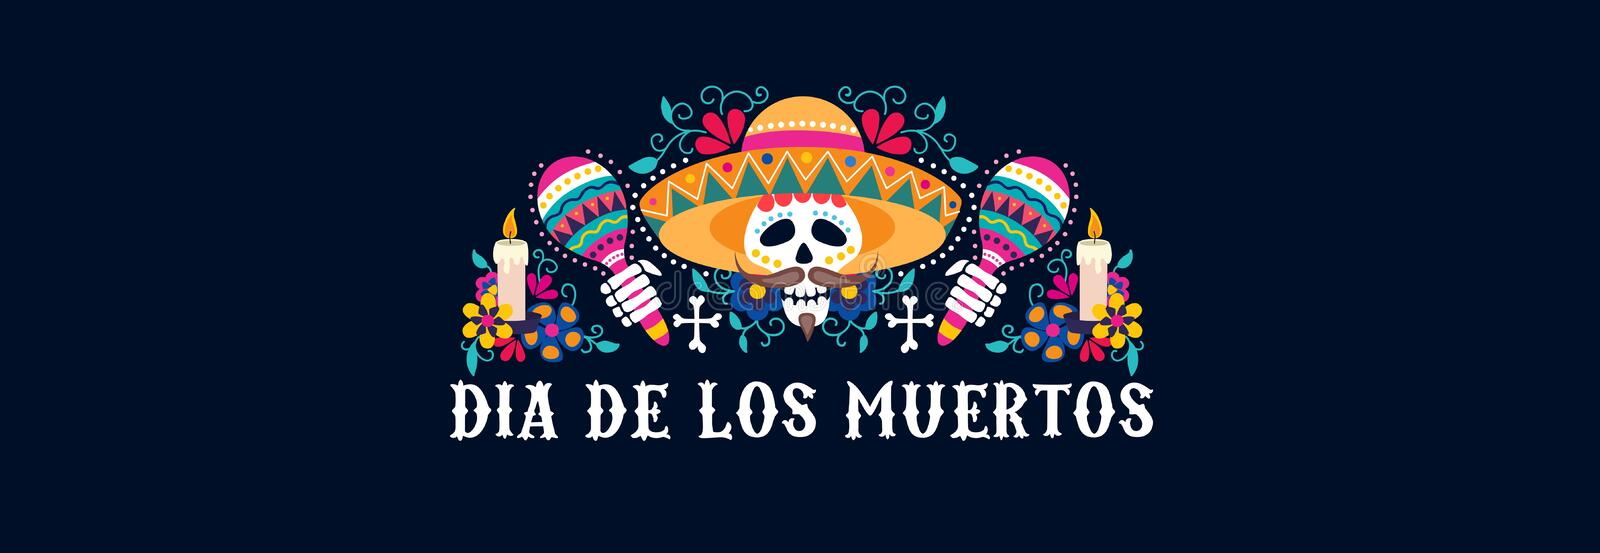 Dia de los muertos greeting card festive design. Vector illustration. Mexican day of dead banner with skull in sombrero and maracas with floral composition flat vector illustration